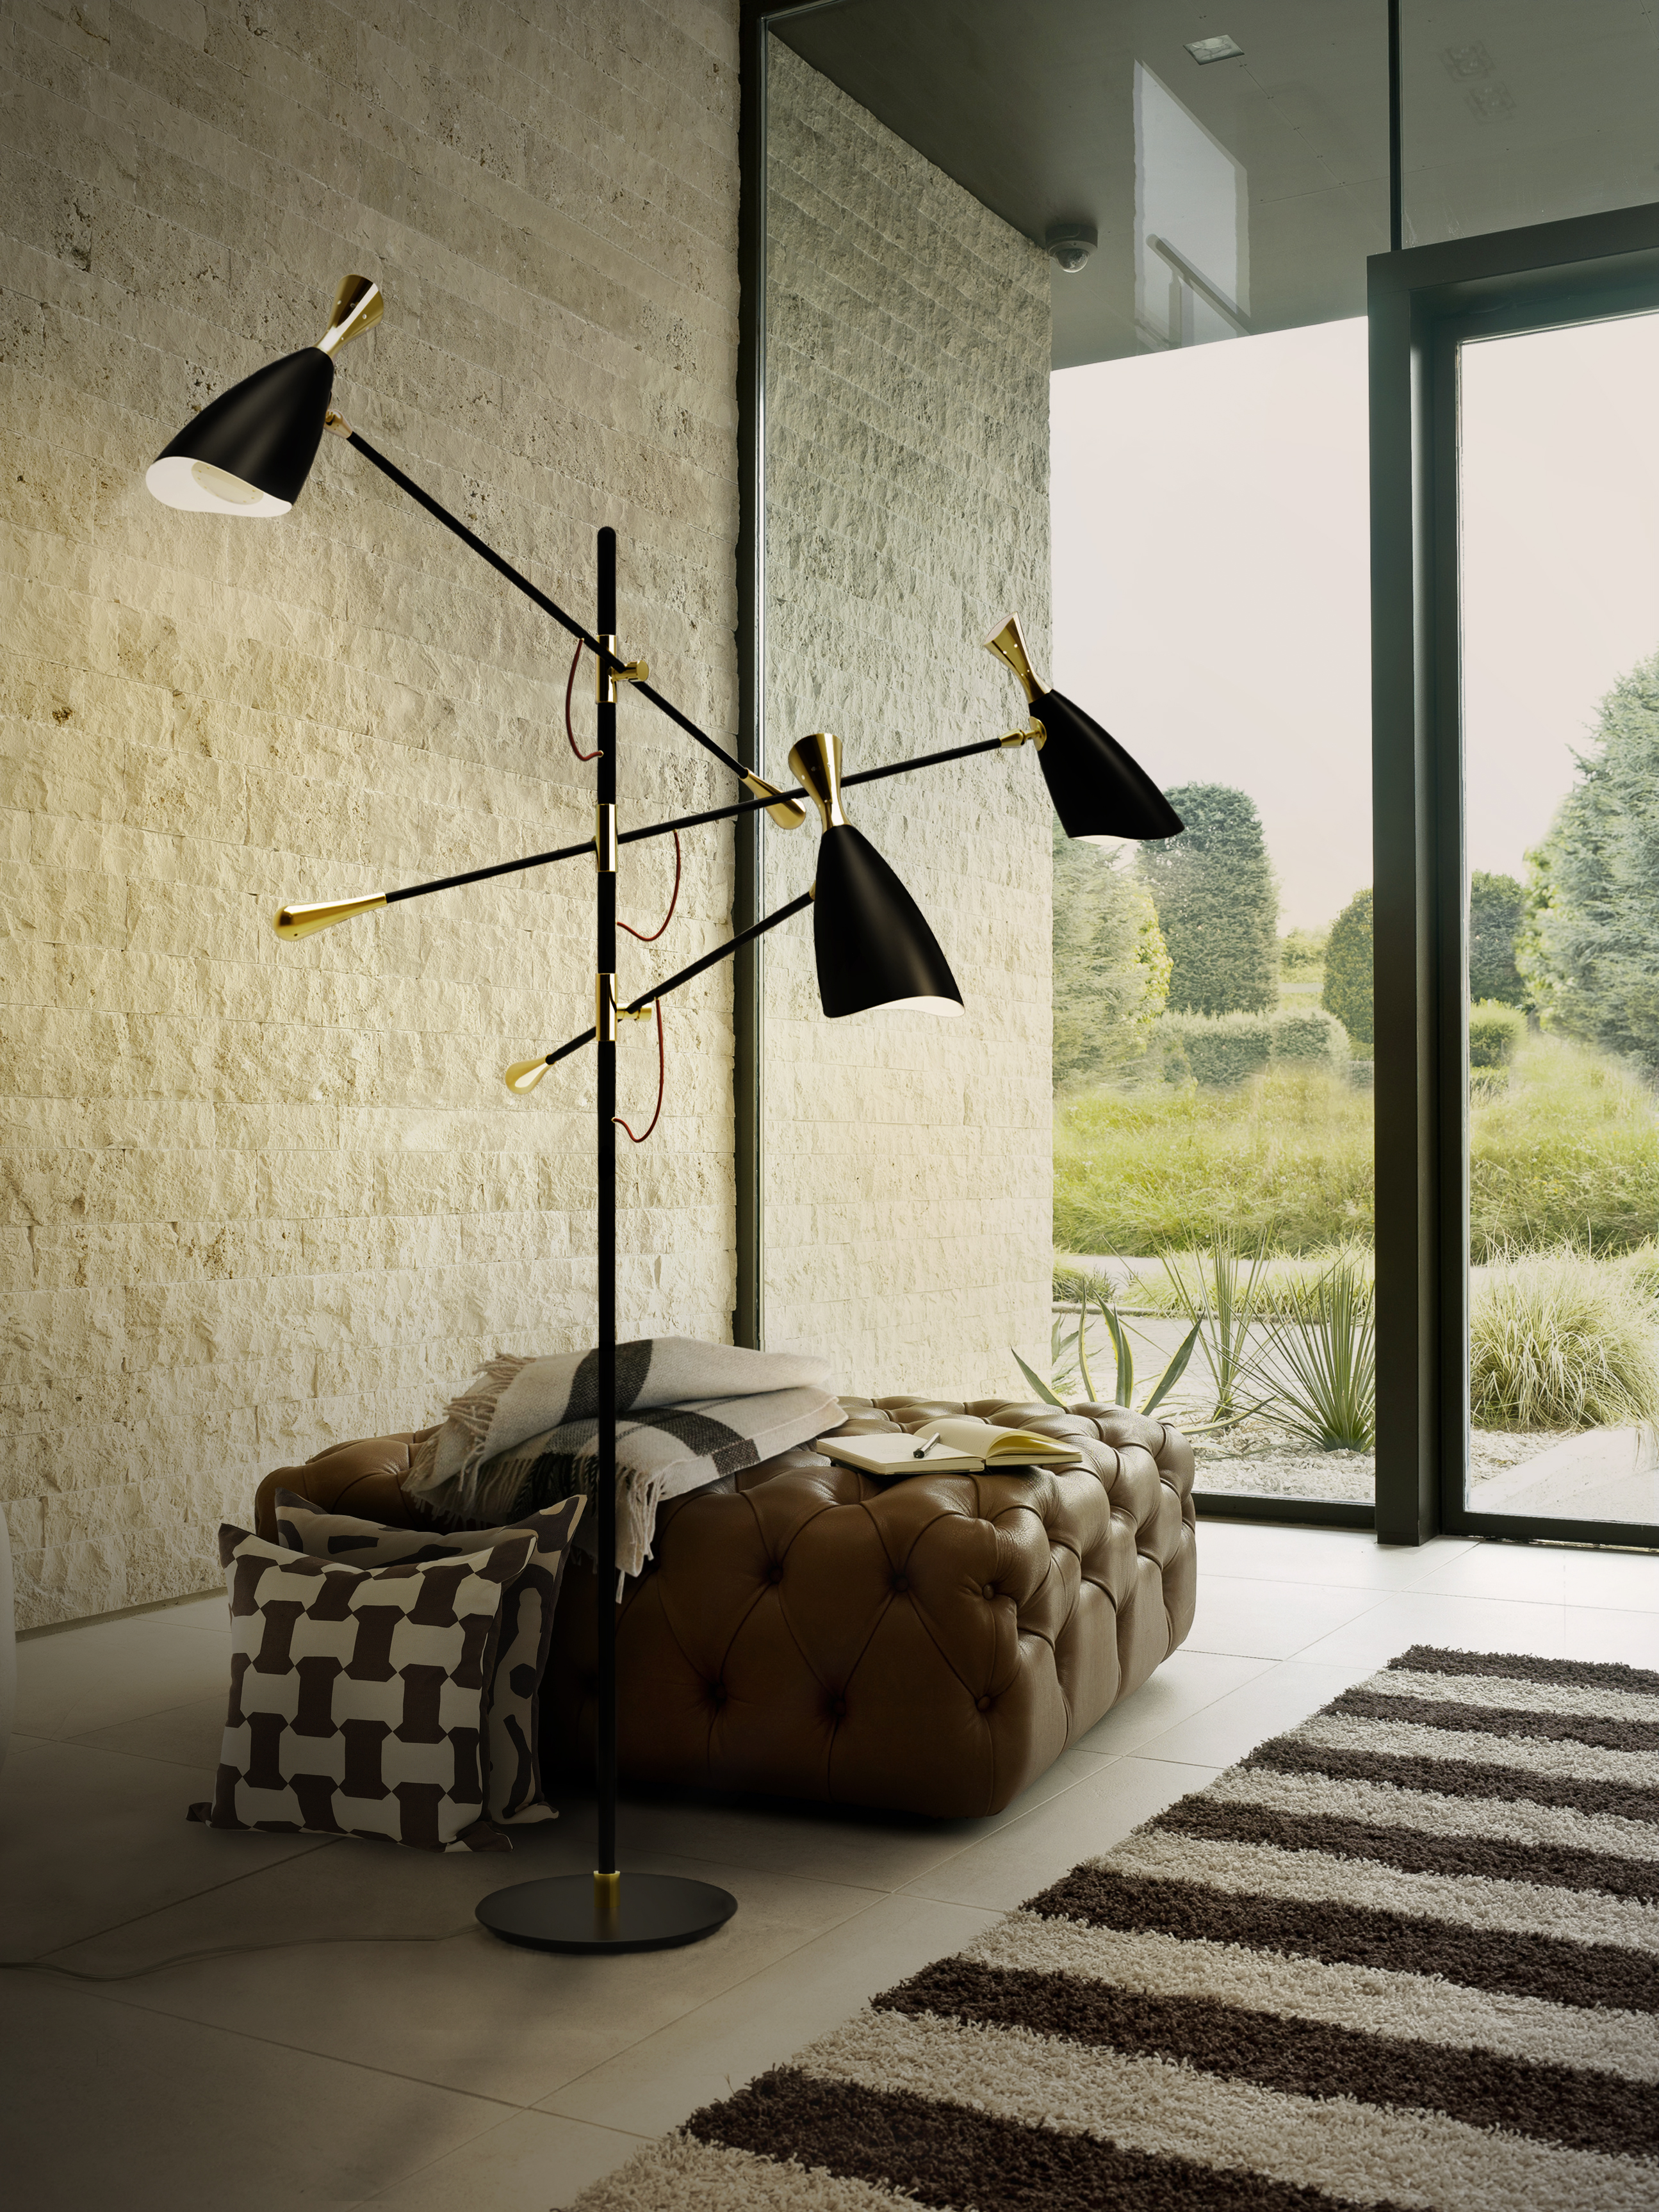 duke floor lamp duke floor lamp Celebrate Duke Ellington's Legacy With Duke Floor Lamp! Celebrate Duke Ellingtons Legacy With Duke Floor Lamp2 1